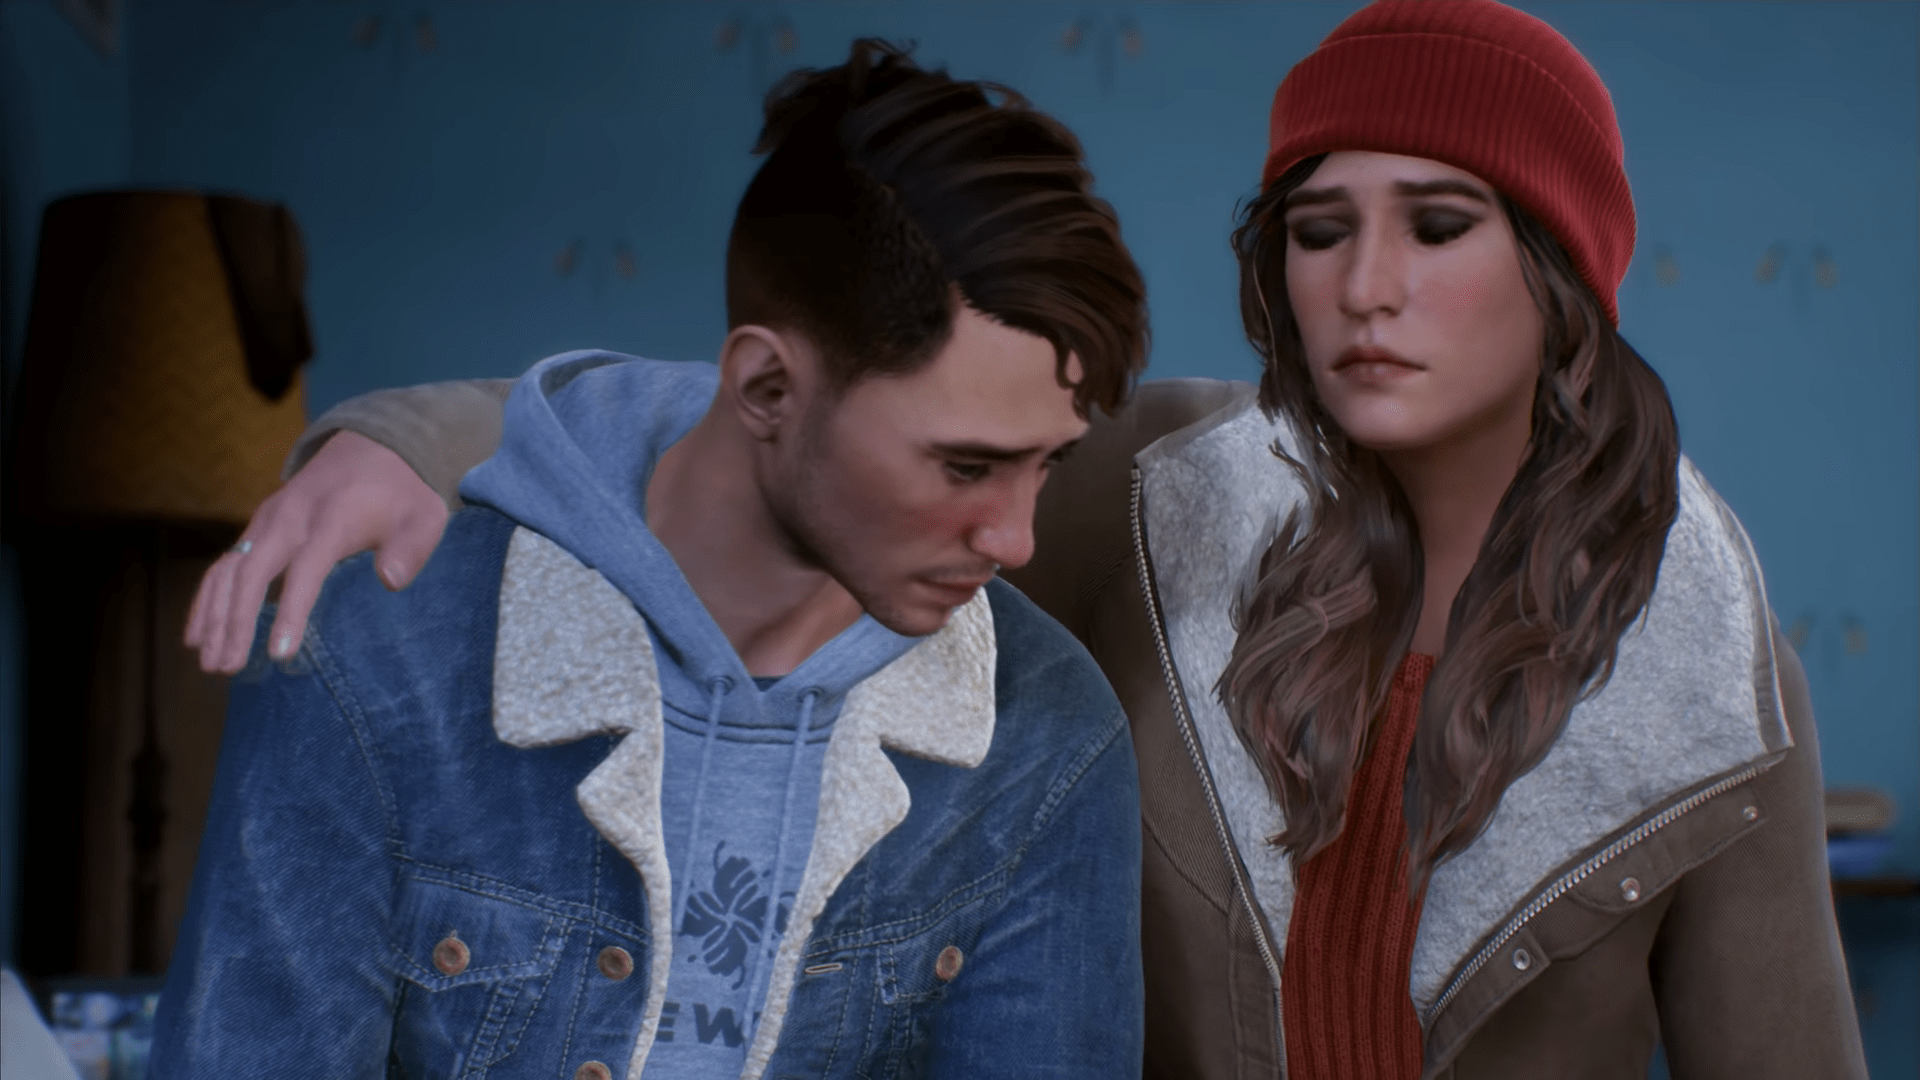 Life Is Strange Developer Releases Trailer For Tell Me Why, Tackles Life Of LGBT